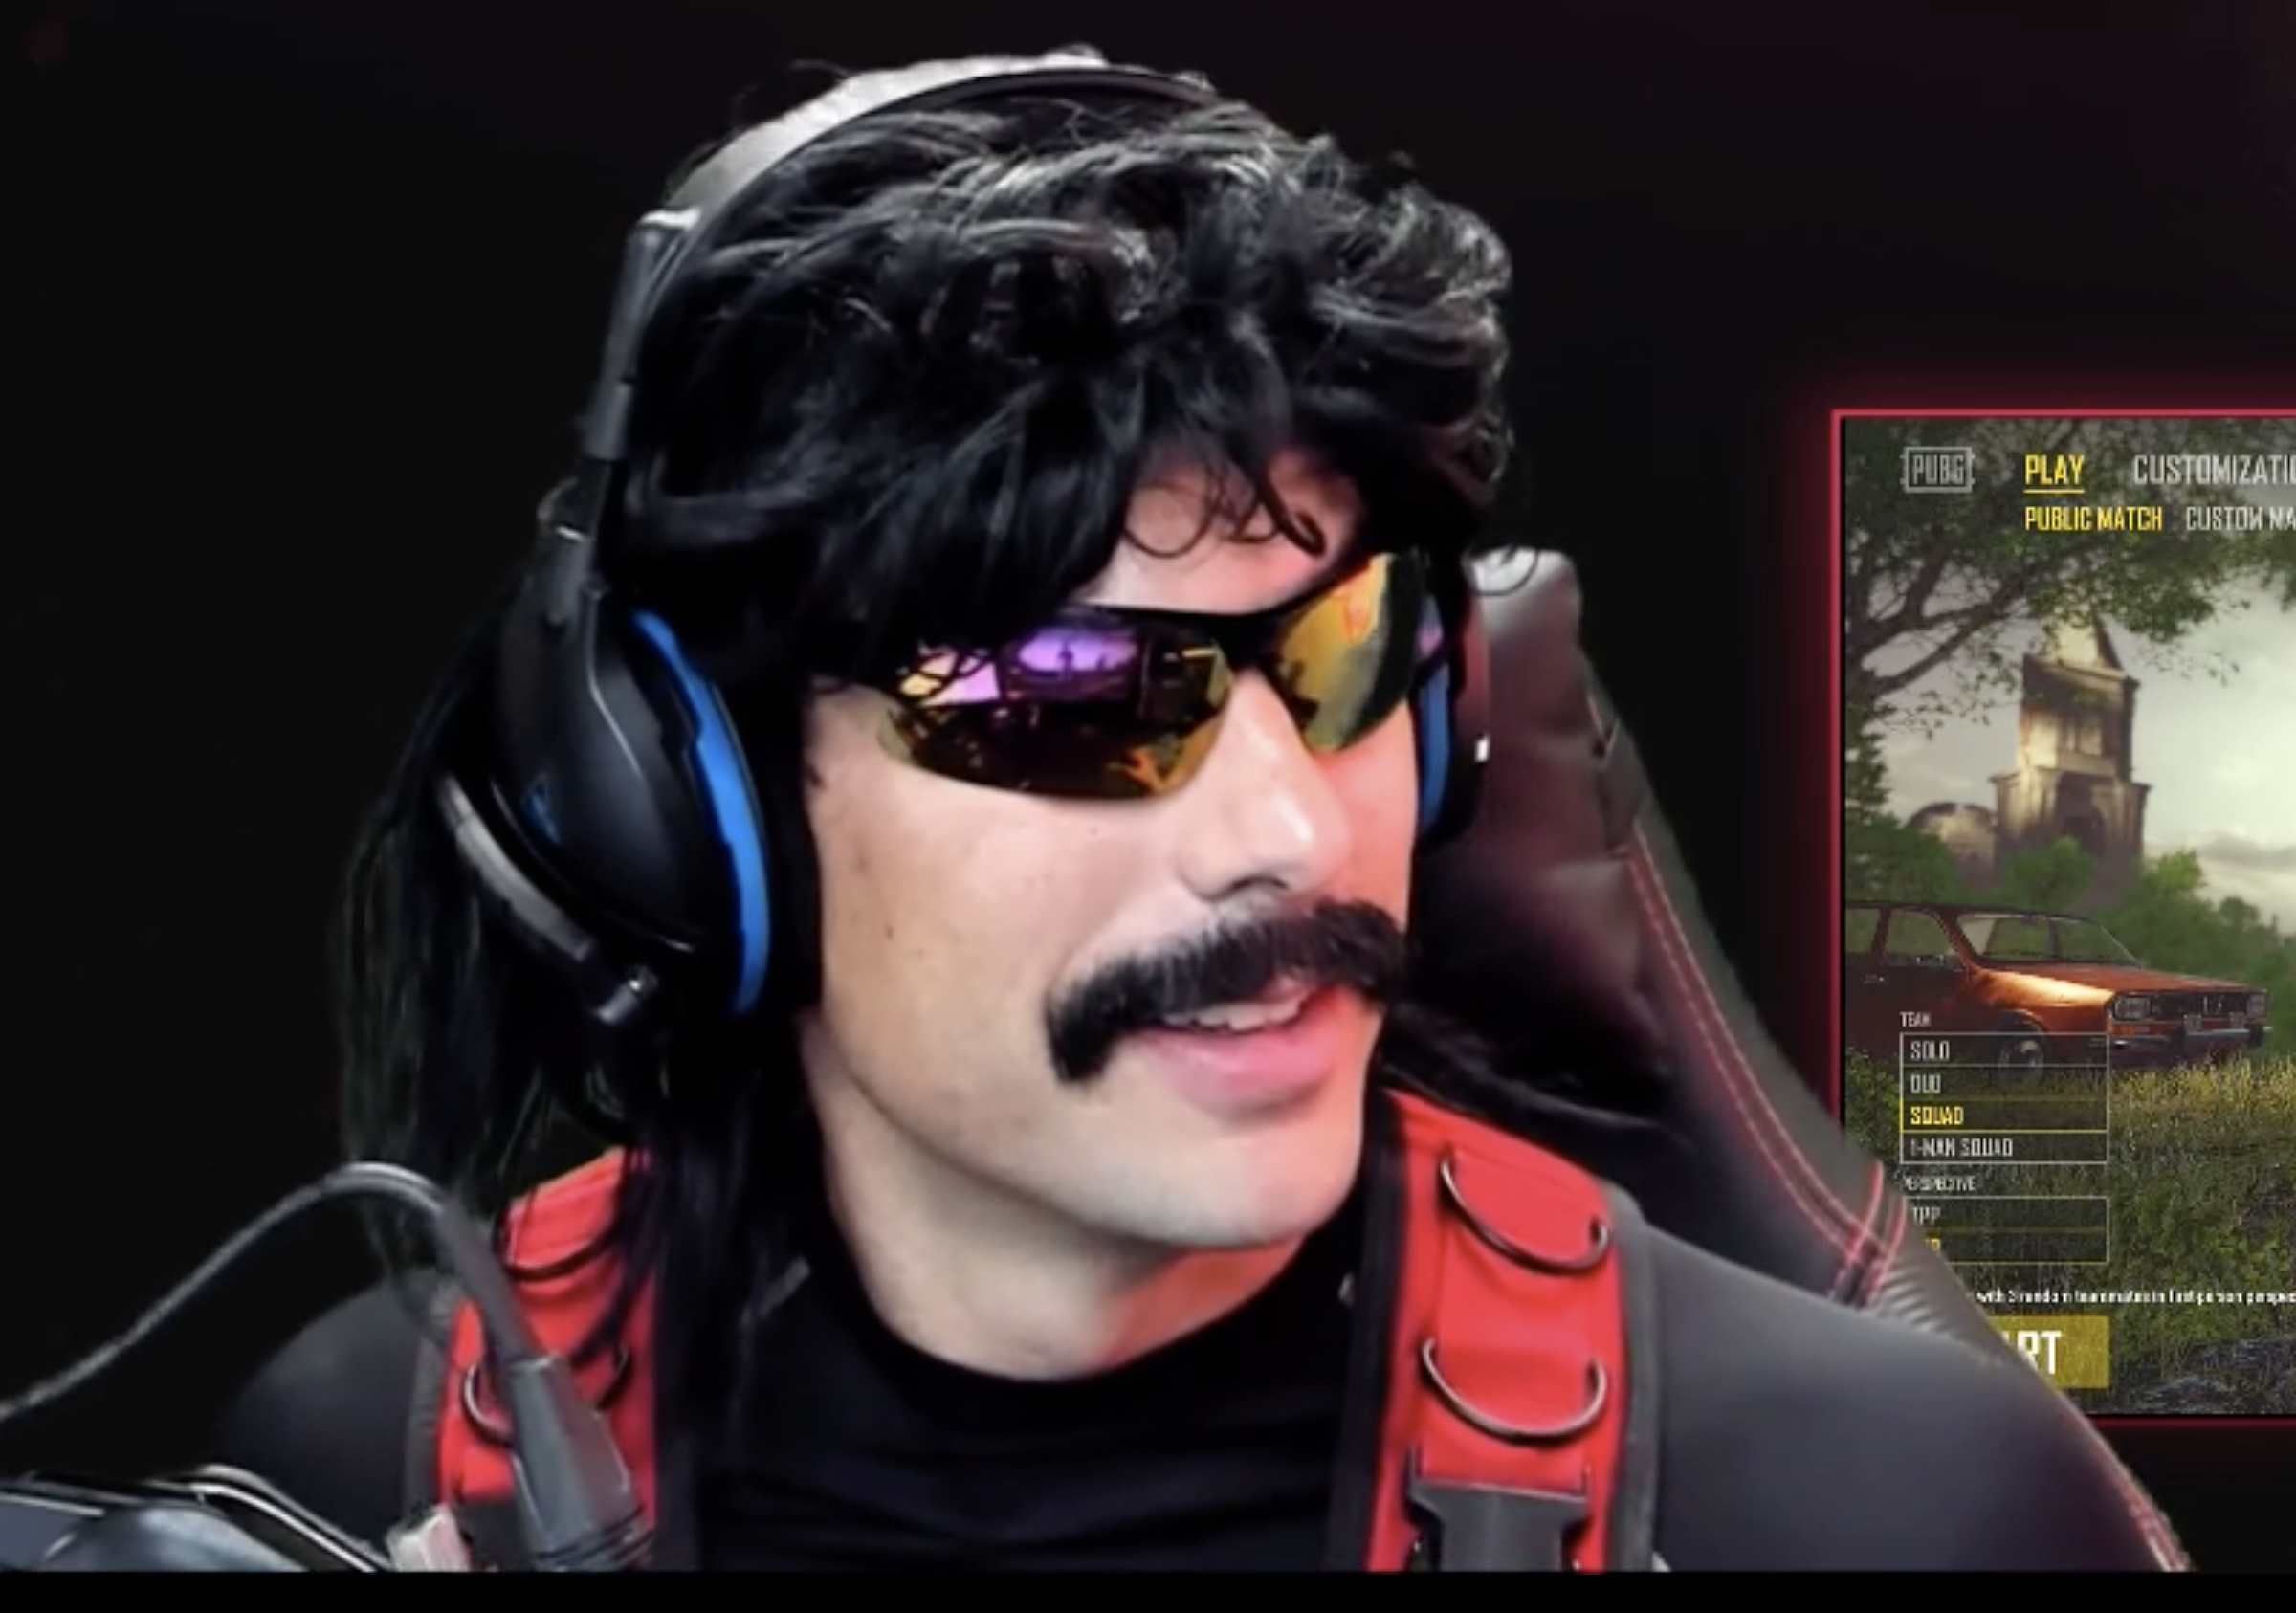 Dr DisRespect complains about Twitch ad rolls promoting